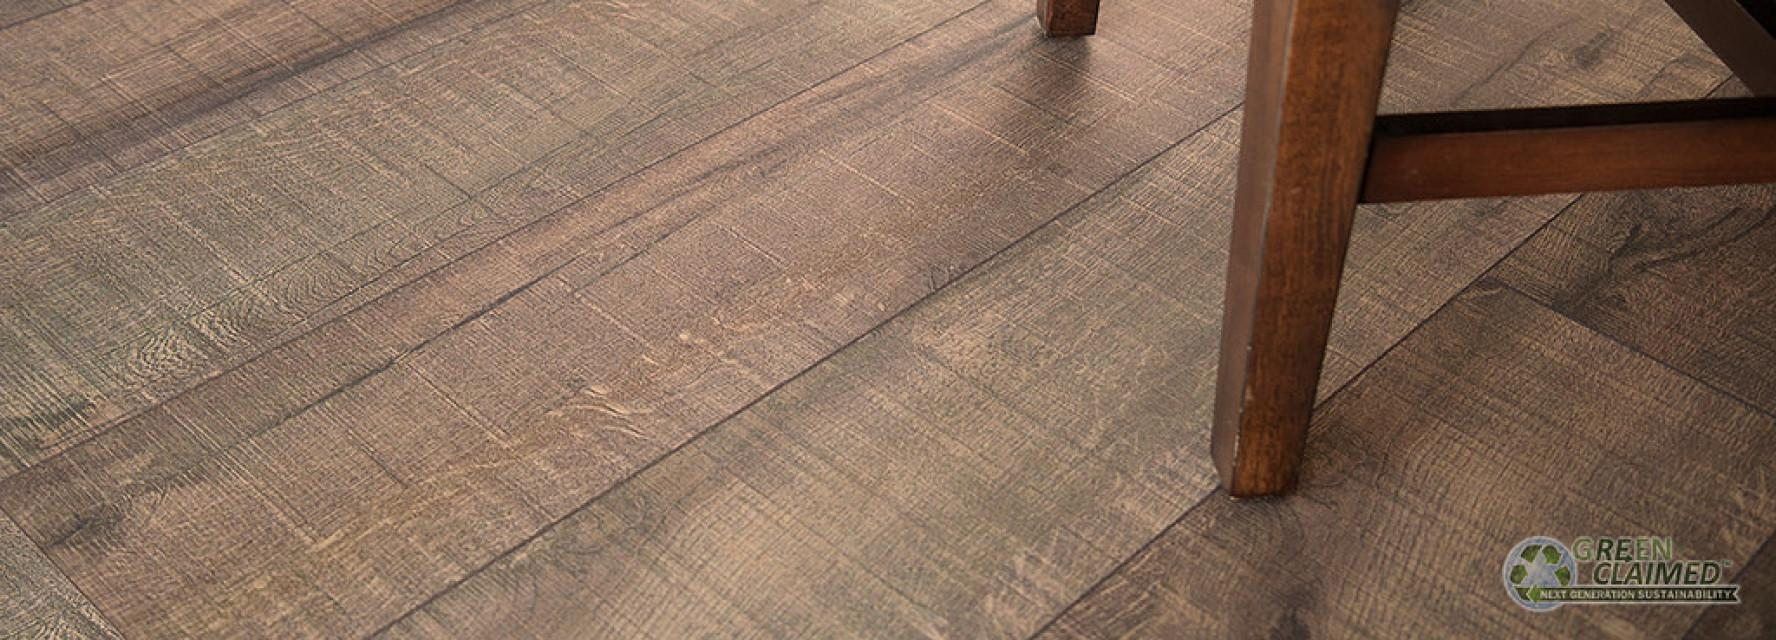 Driftwood Wide Inspired Cork Flooring Greenclaimed